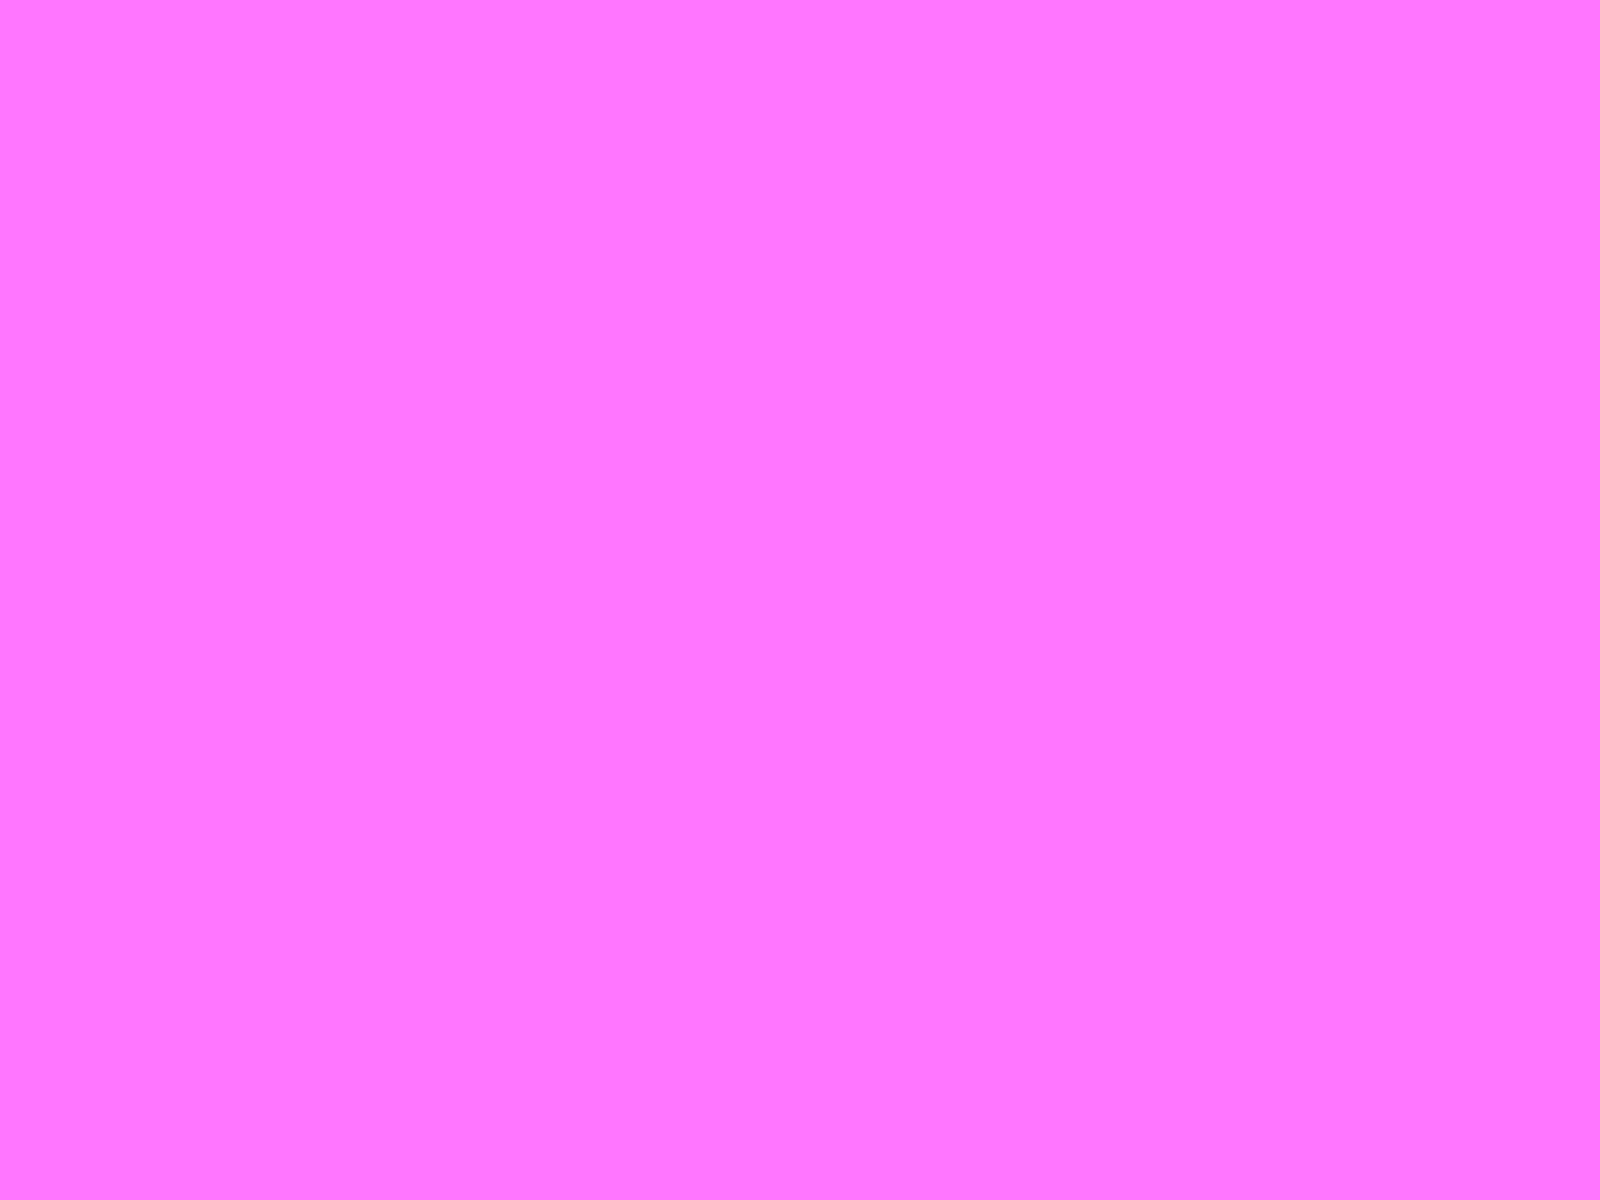 1600x1200 Fuchsia Pink Solid Color Background